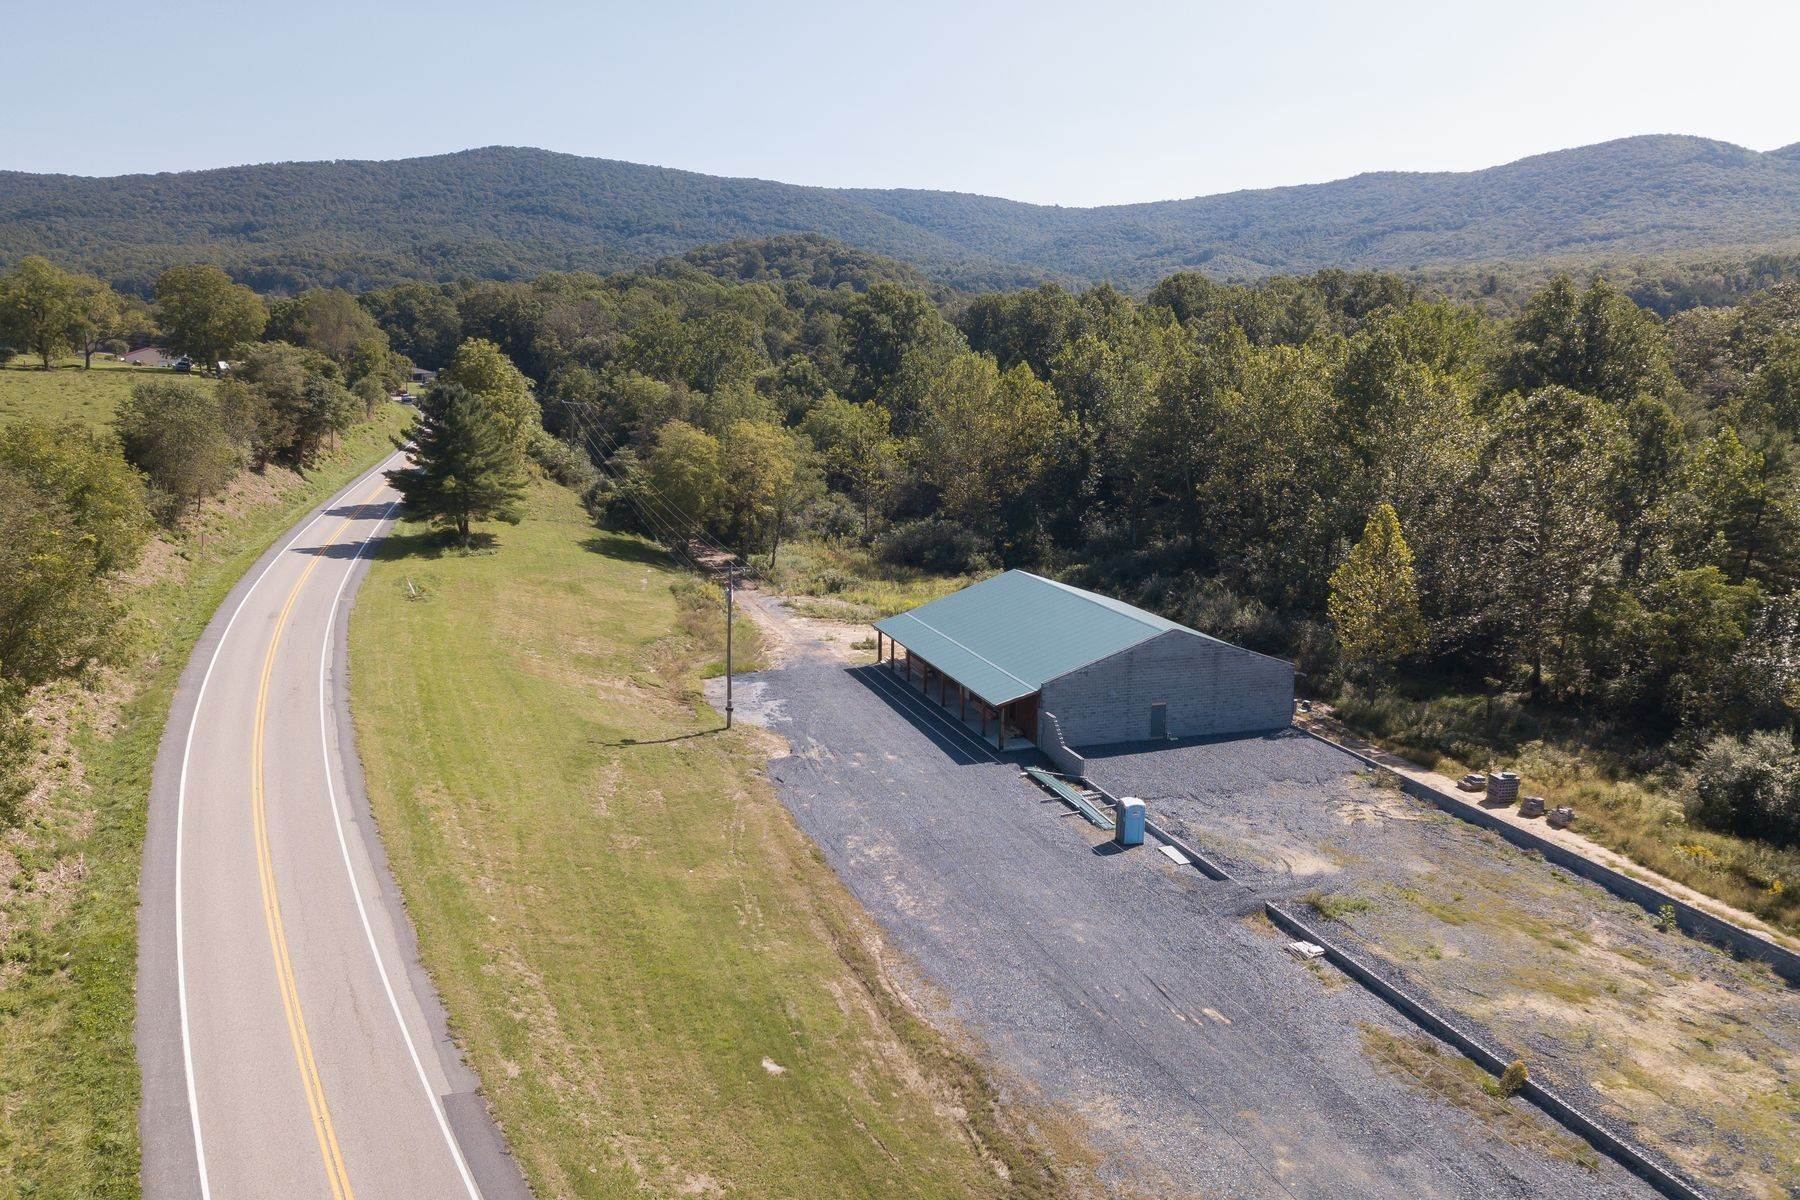 Land for Sale at 2570 Little Calf Pasture Highway 2570 Little Calf Pasture Hwy Swoope, Virginia 24479 United States